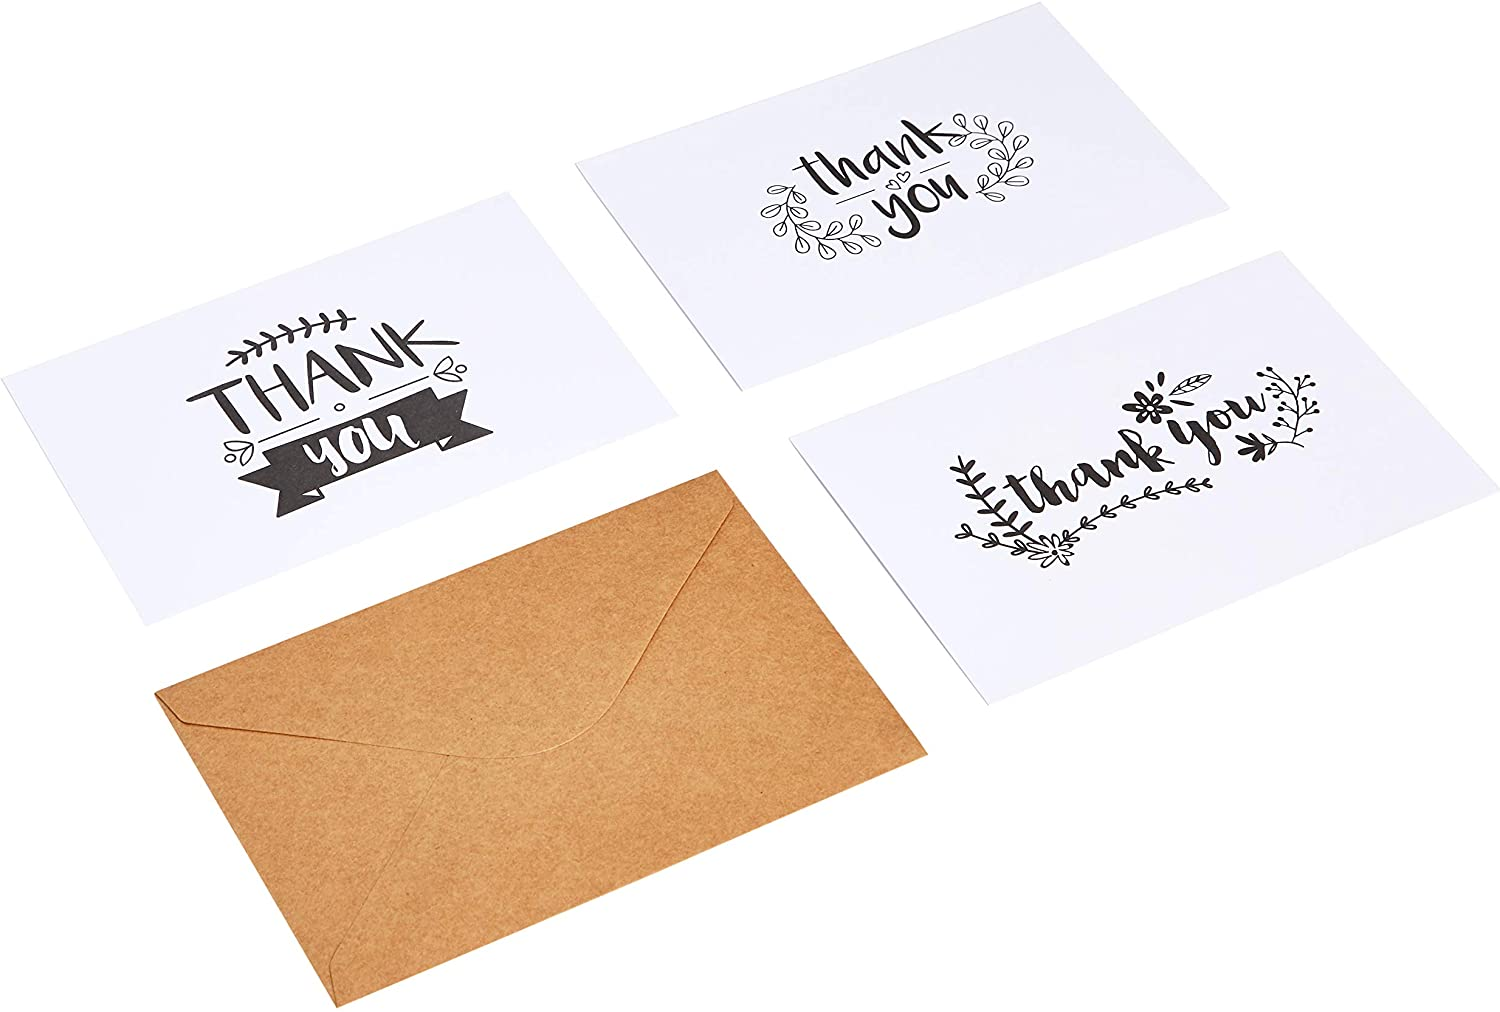 AmazonBasics Thank You Cards, Black and White, 48 Cards and Envelopes